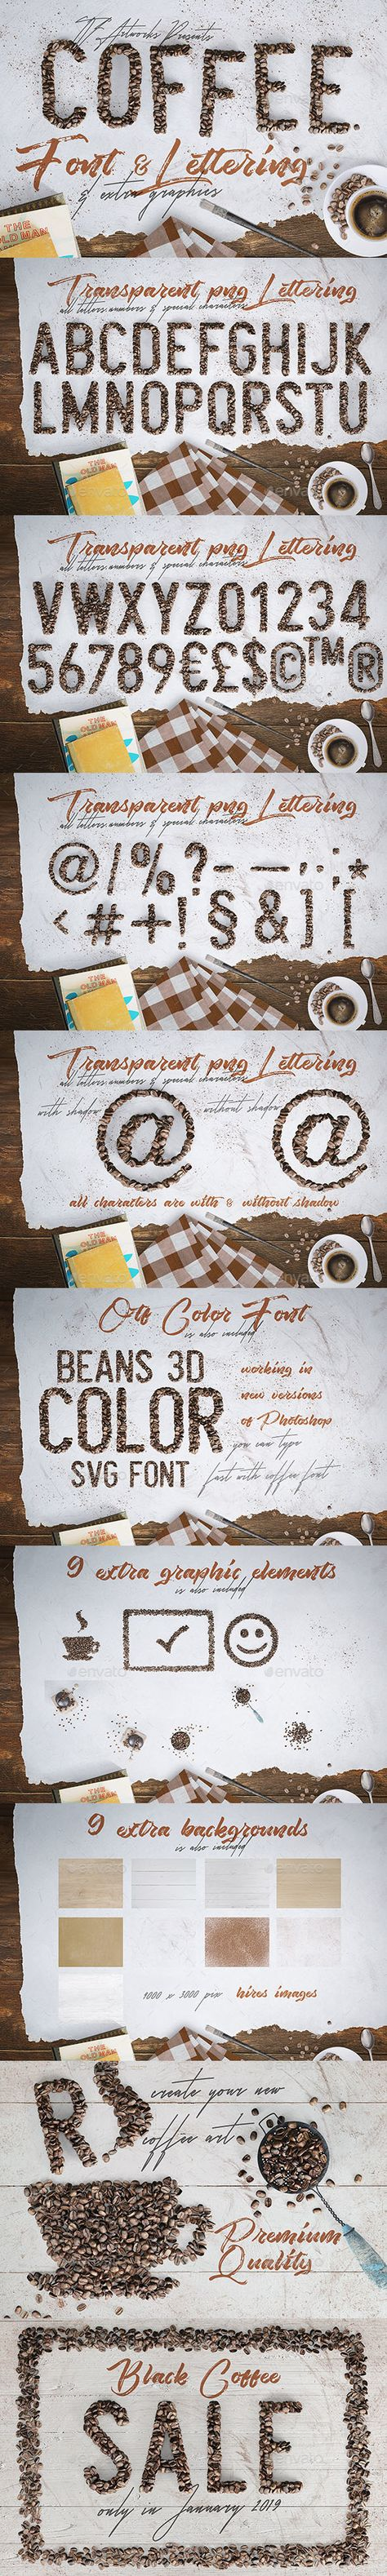 3D Graphics & Renders - Coffee Beans - Font & Lettering